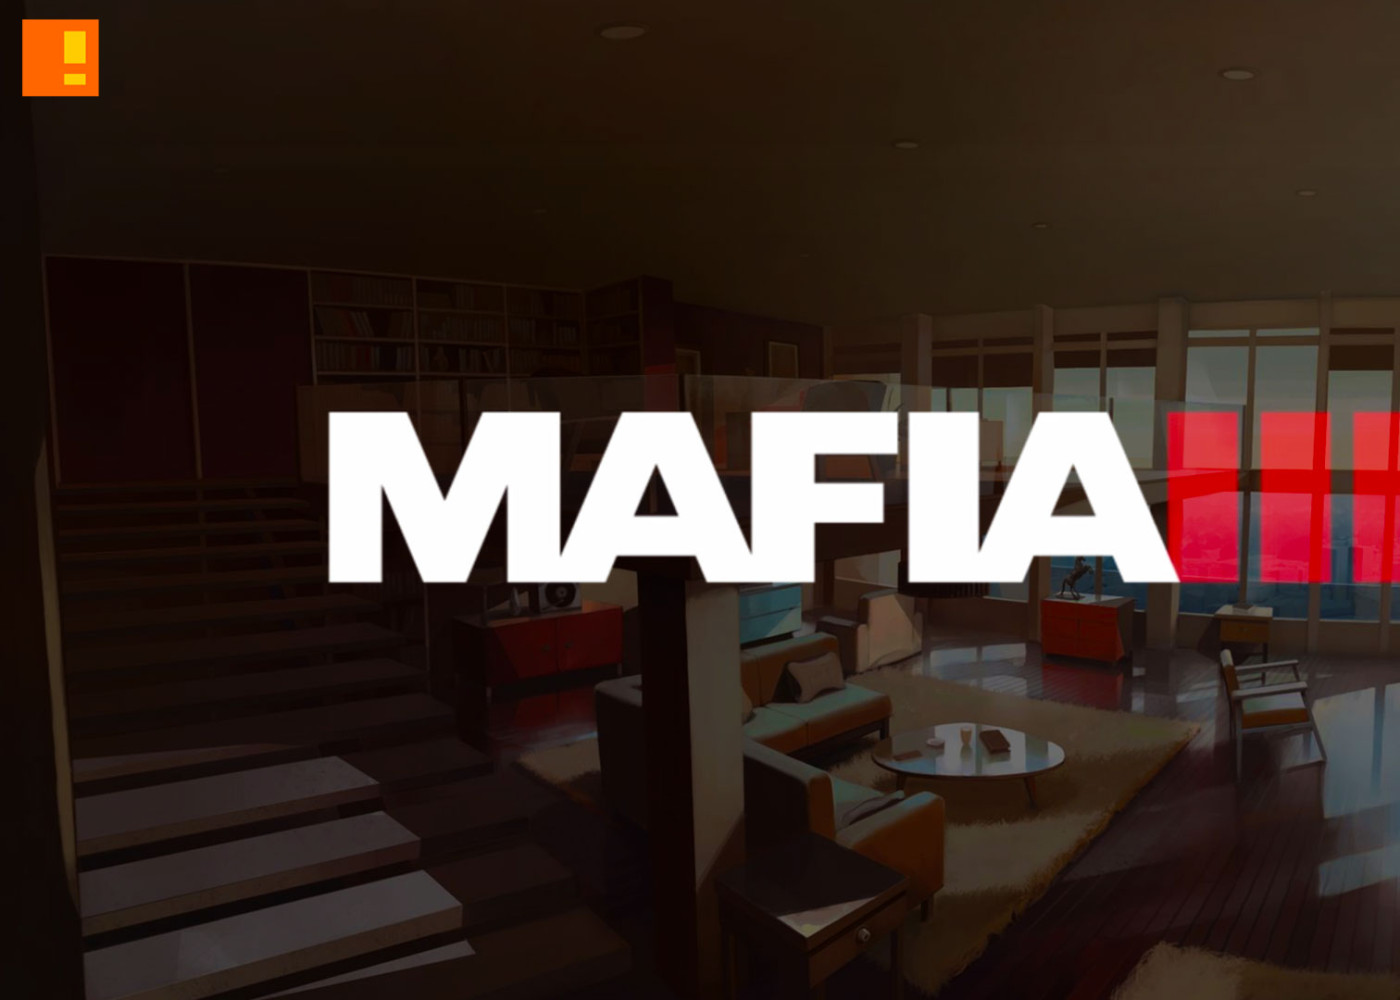 mafia 3 concept art . the action pixel. @theactionpixel. 2k